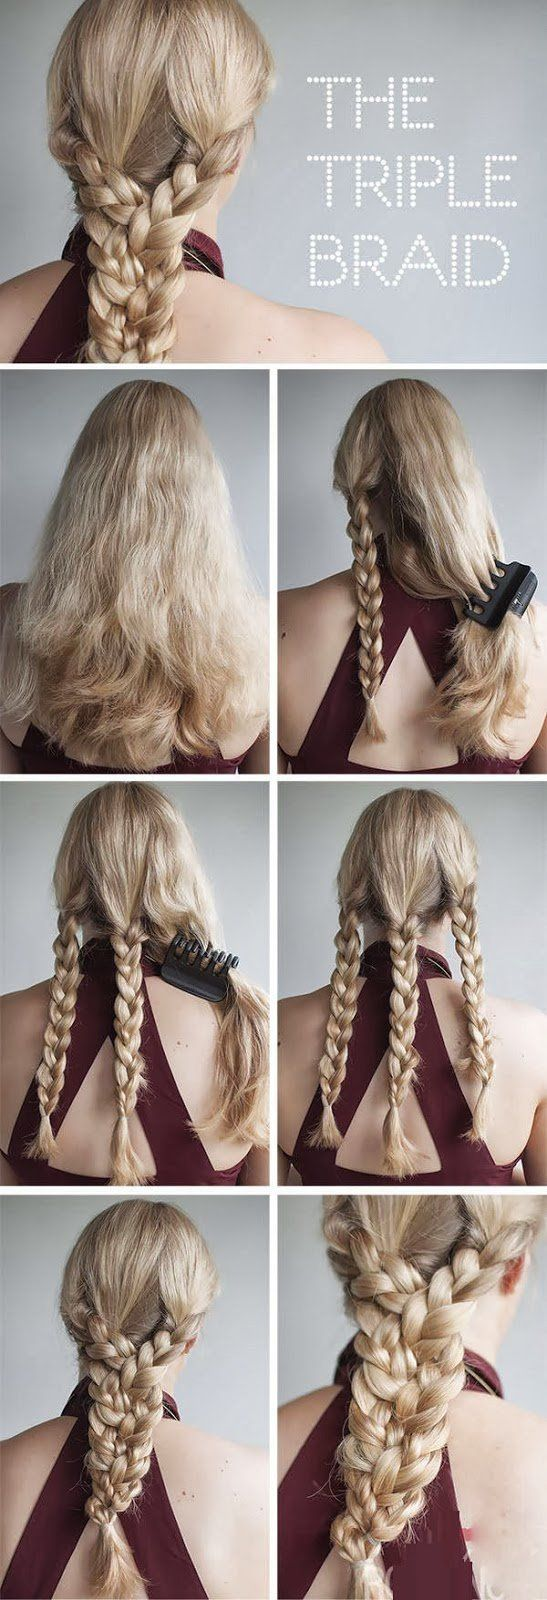 Hairstyles Step By Step top 25 best step by step hairstyles ideas on pinterest simple hair updos easy hairstyle and simple hairstyles Step By Step Different Style Braids Tutorials